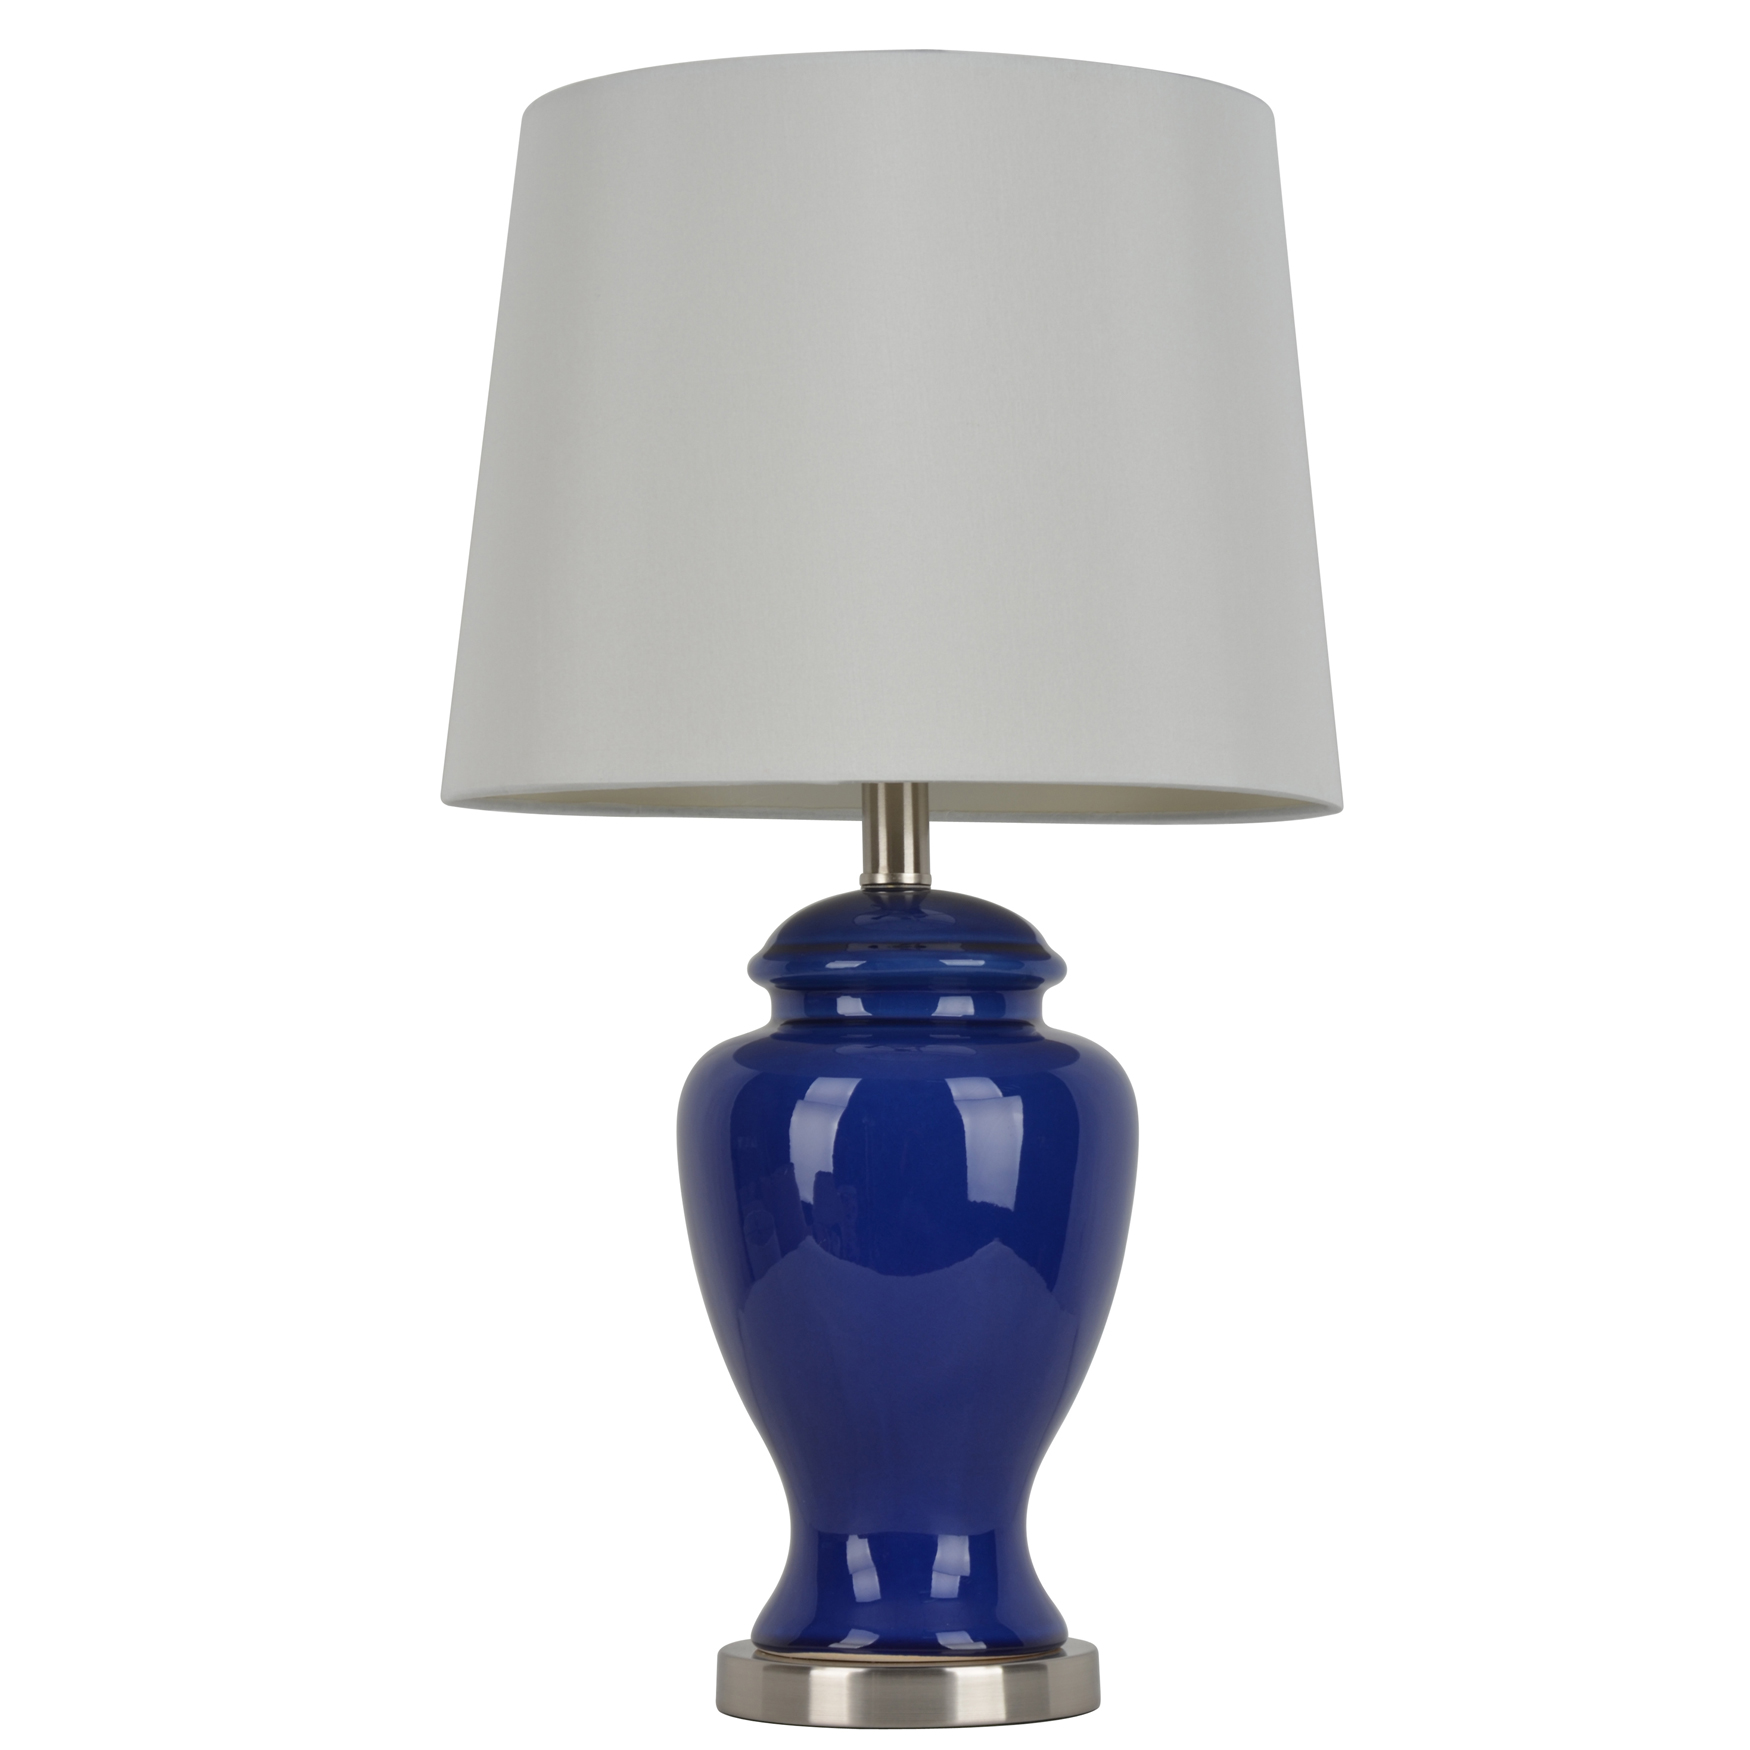 24' Blue Ceramic Table Lamp, BLUE